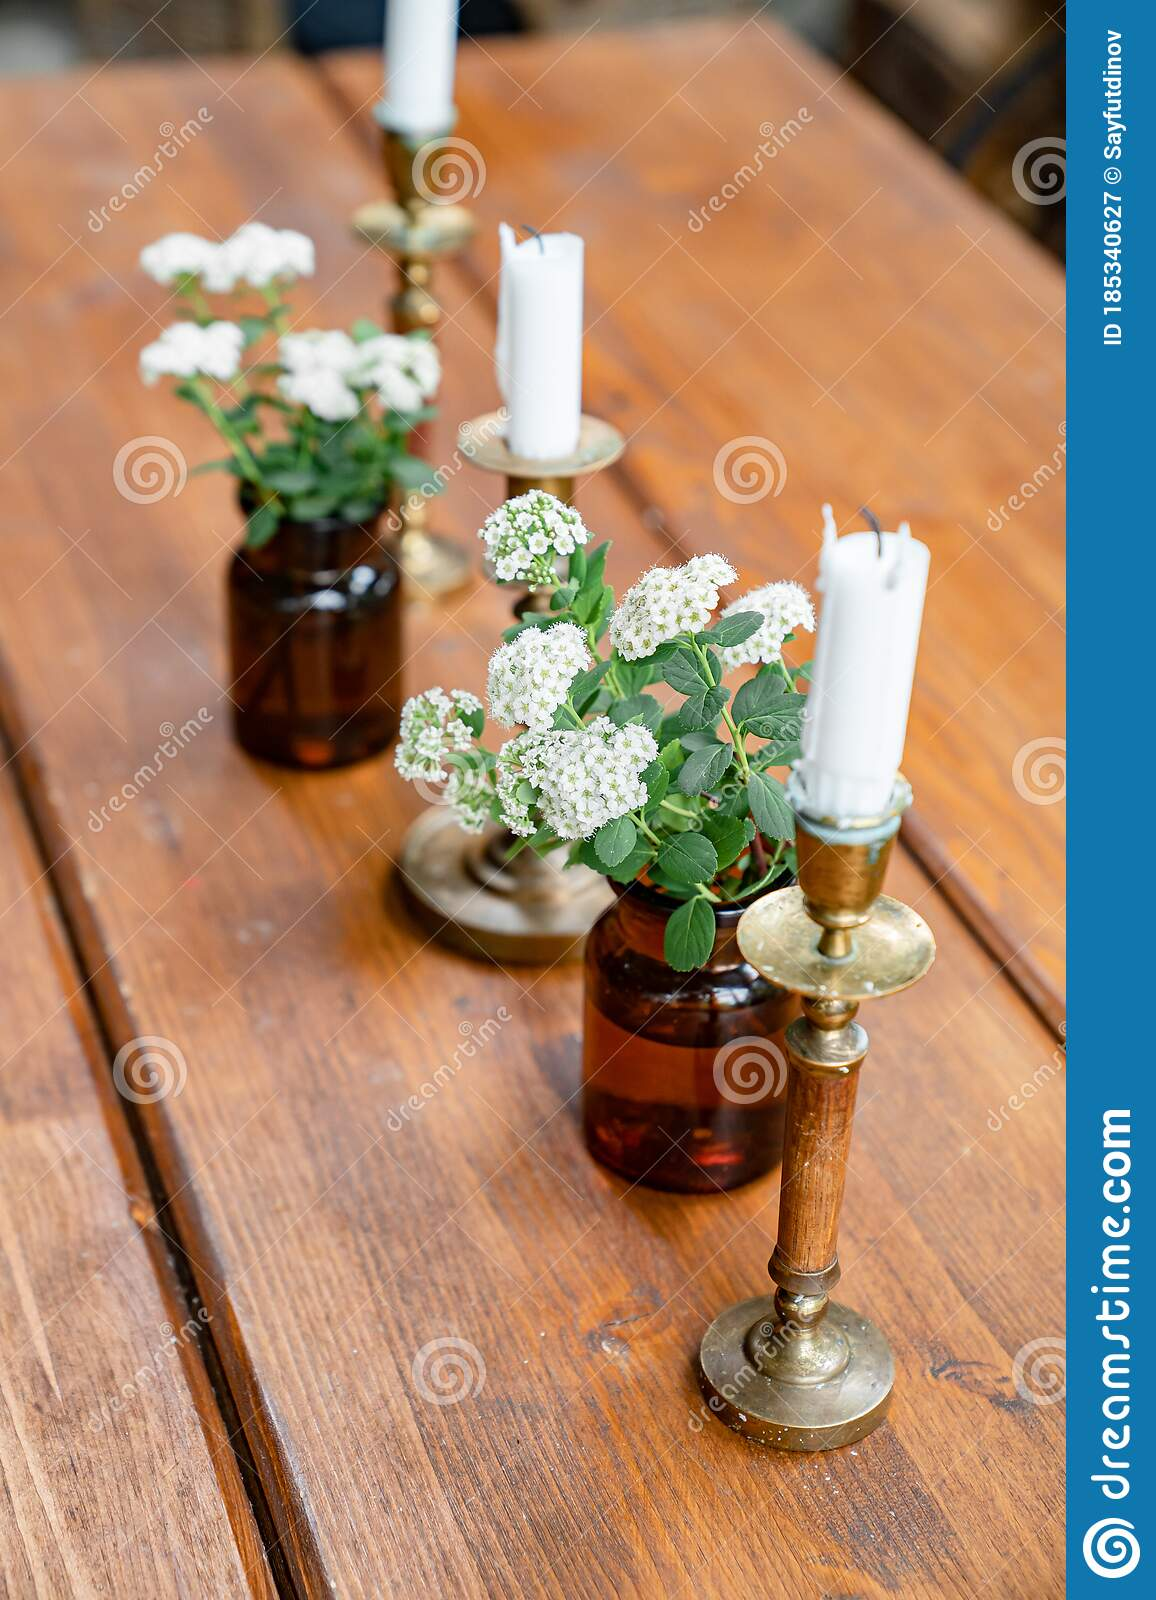 Decor Of Dining Table Candles And Small White Flowers Stock Image Image Of Flowers Tree 185340627